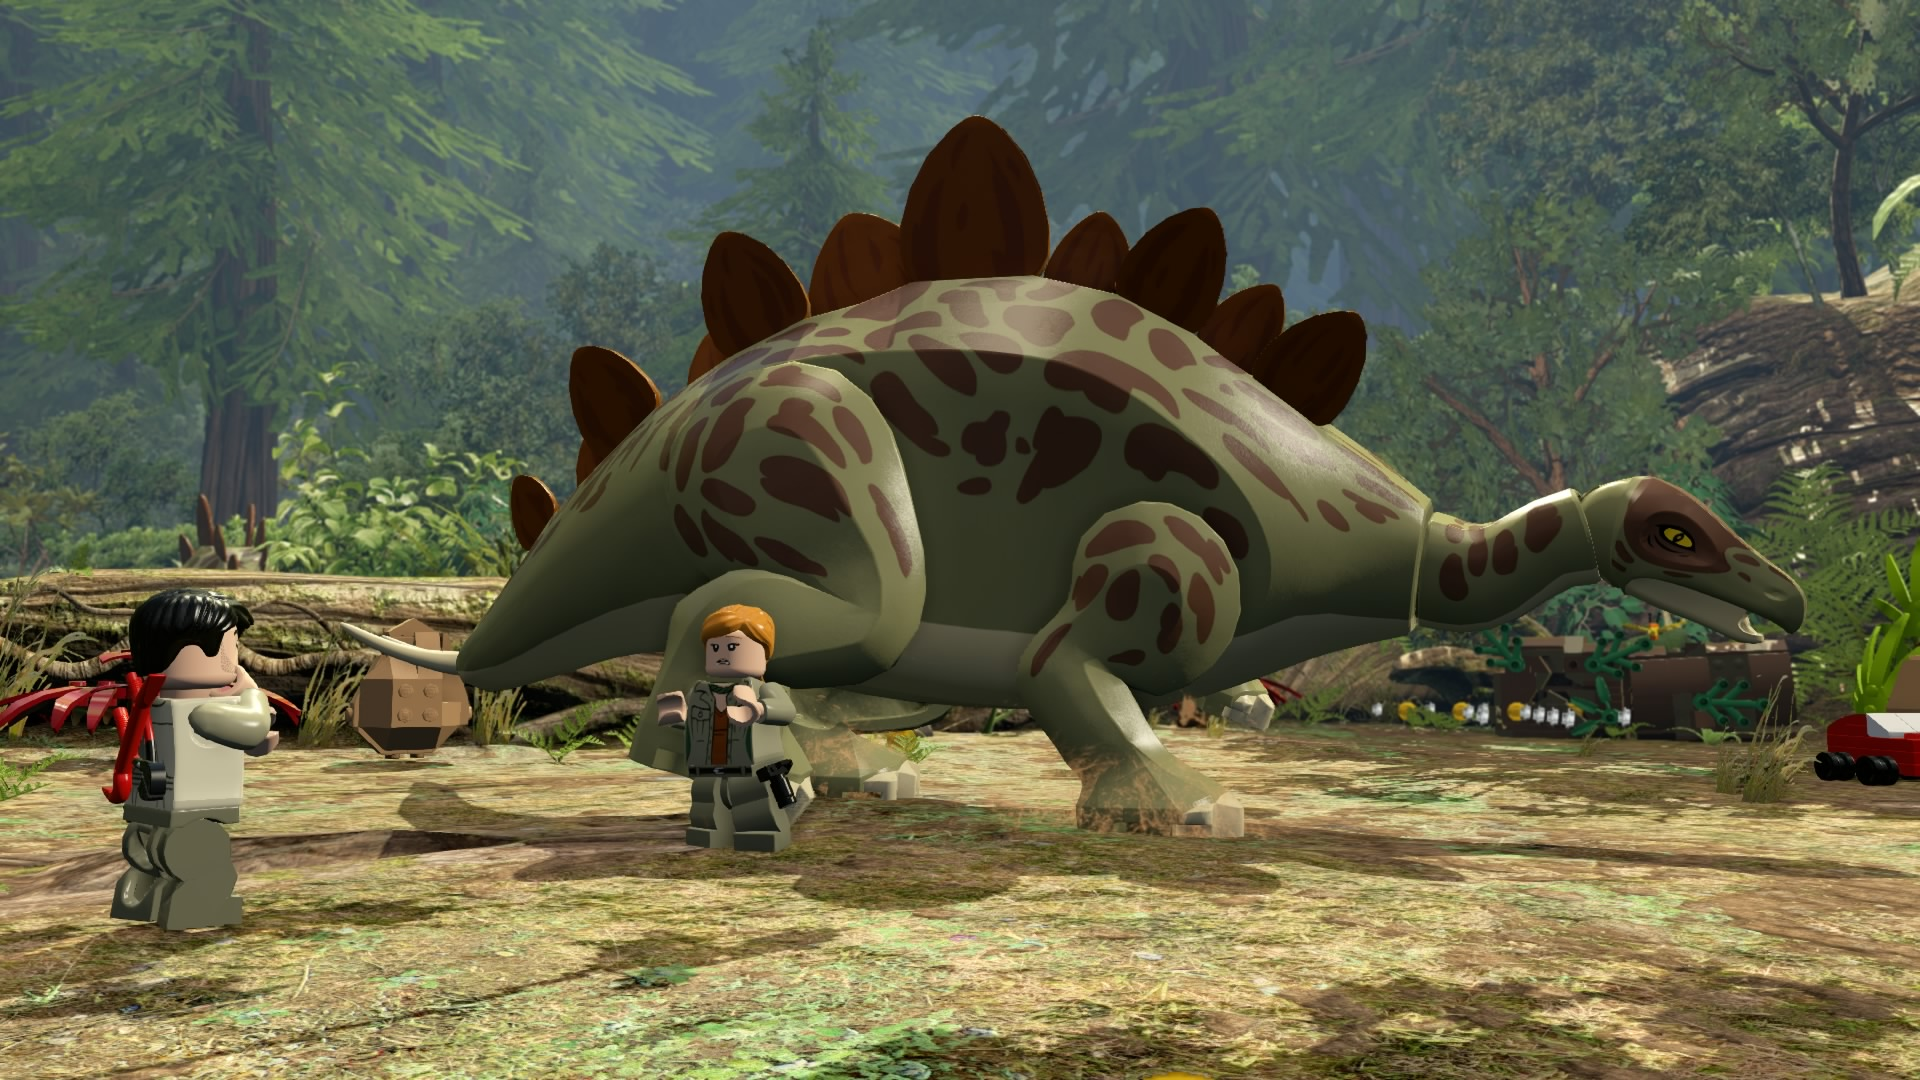 LEGO Jurassic World Game - Stegosaurus